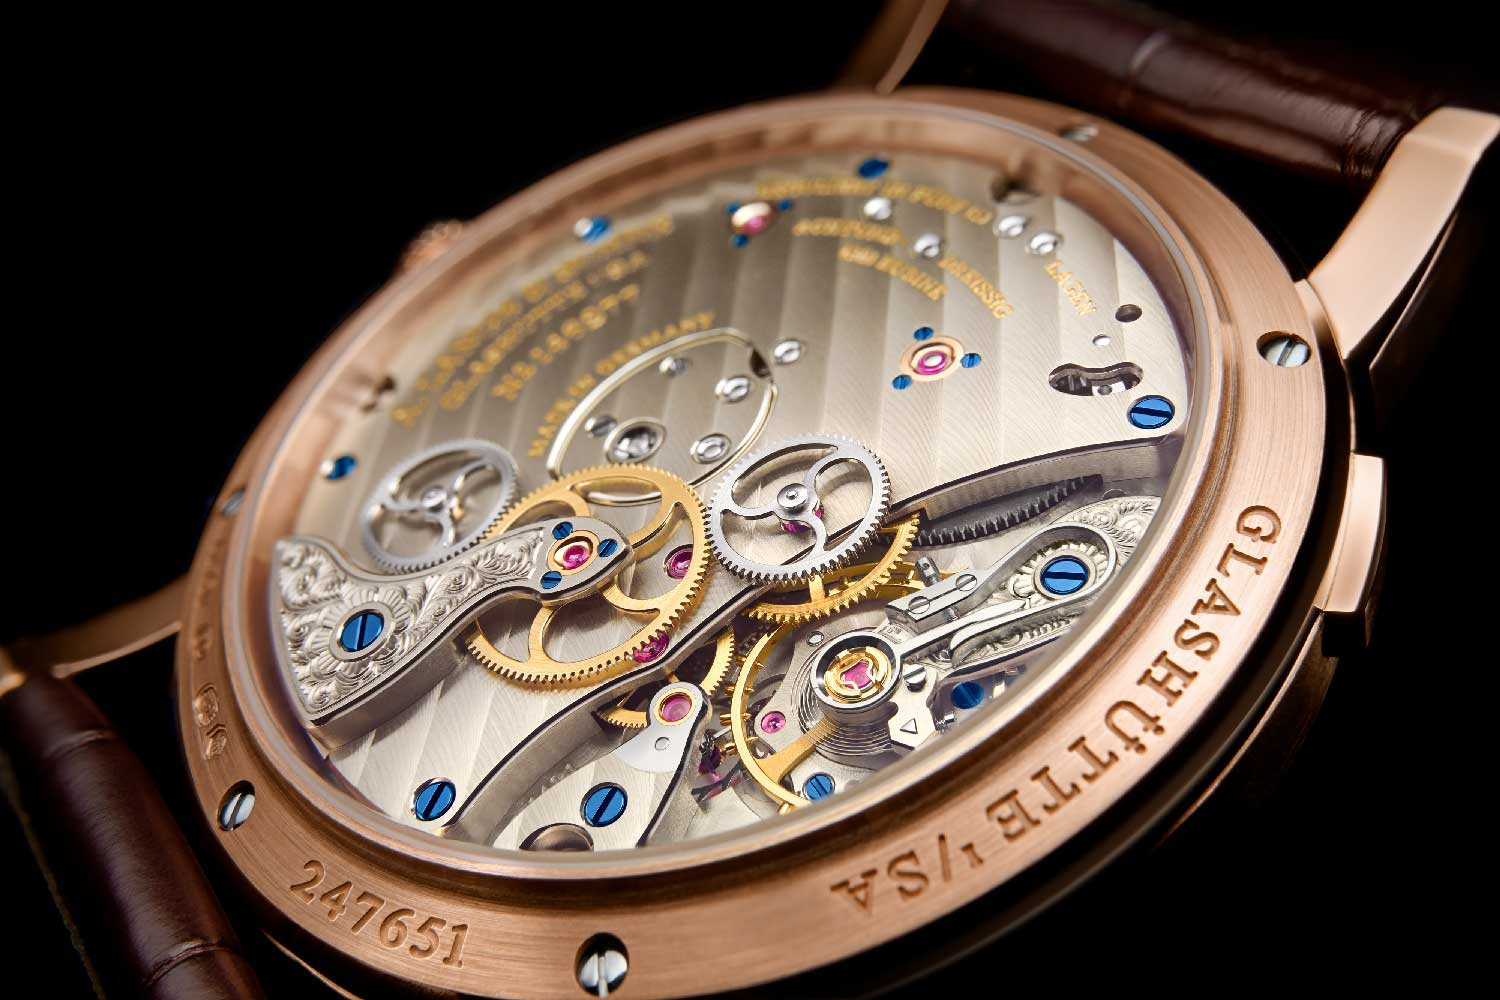 A closer look at the opening on the ¾ plate movement of the calibre :141.1, showing the escapement assembly